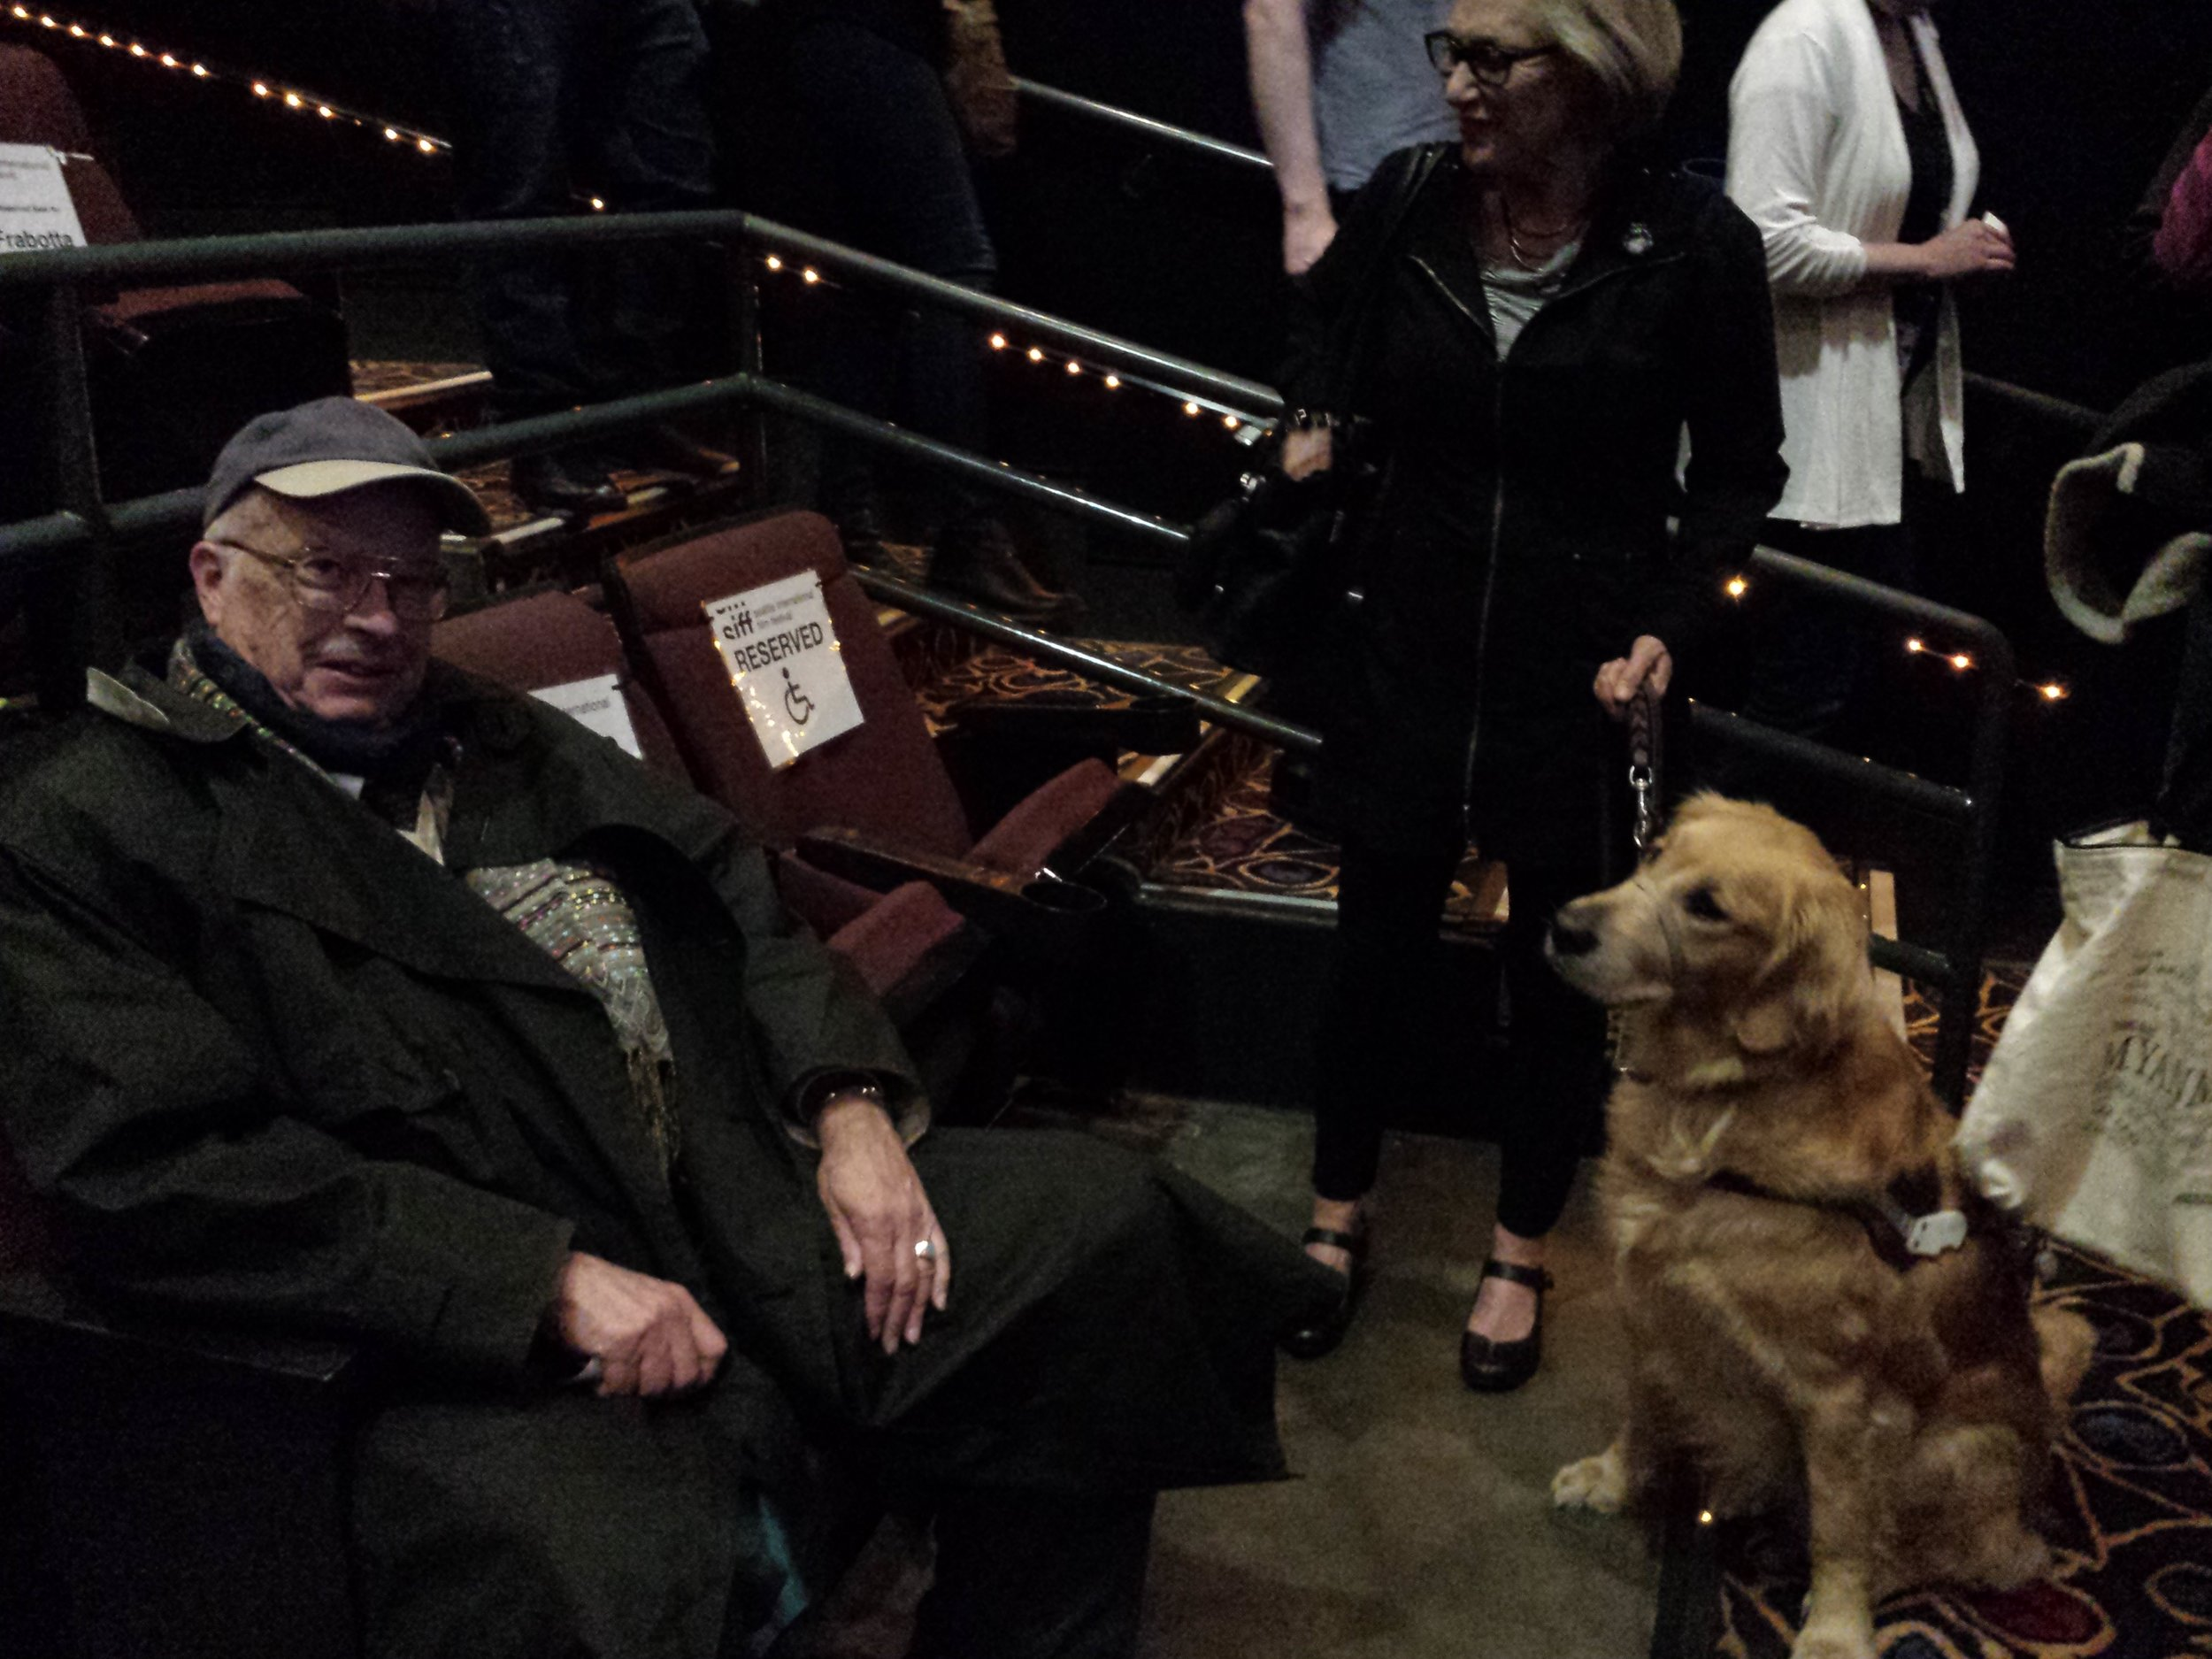 A service dog, a trainer, and a critic meet at a screening of  Pick of the Litter.